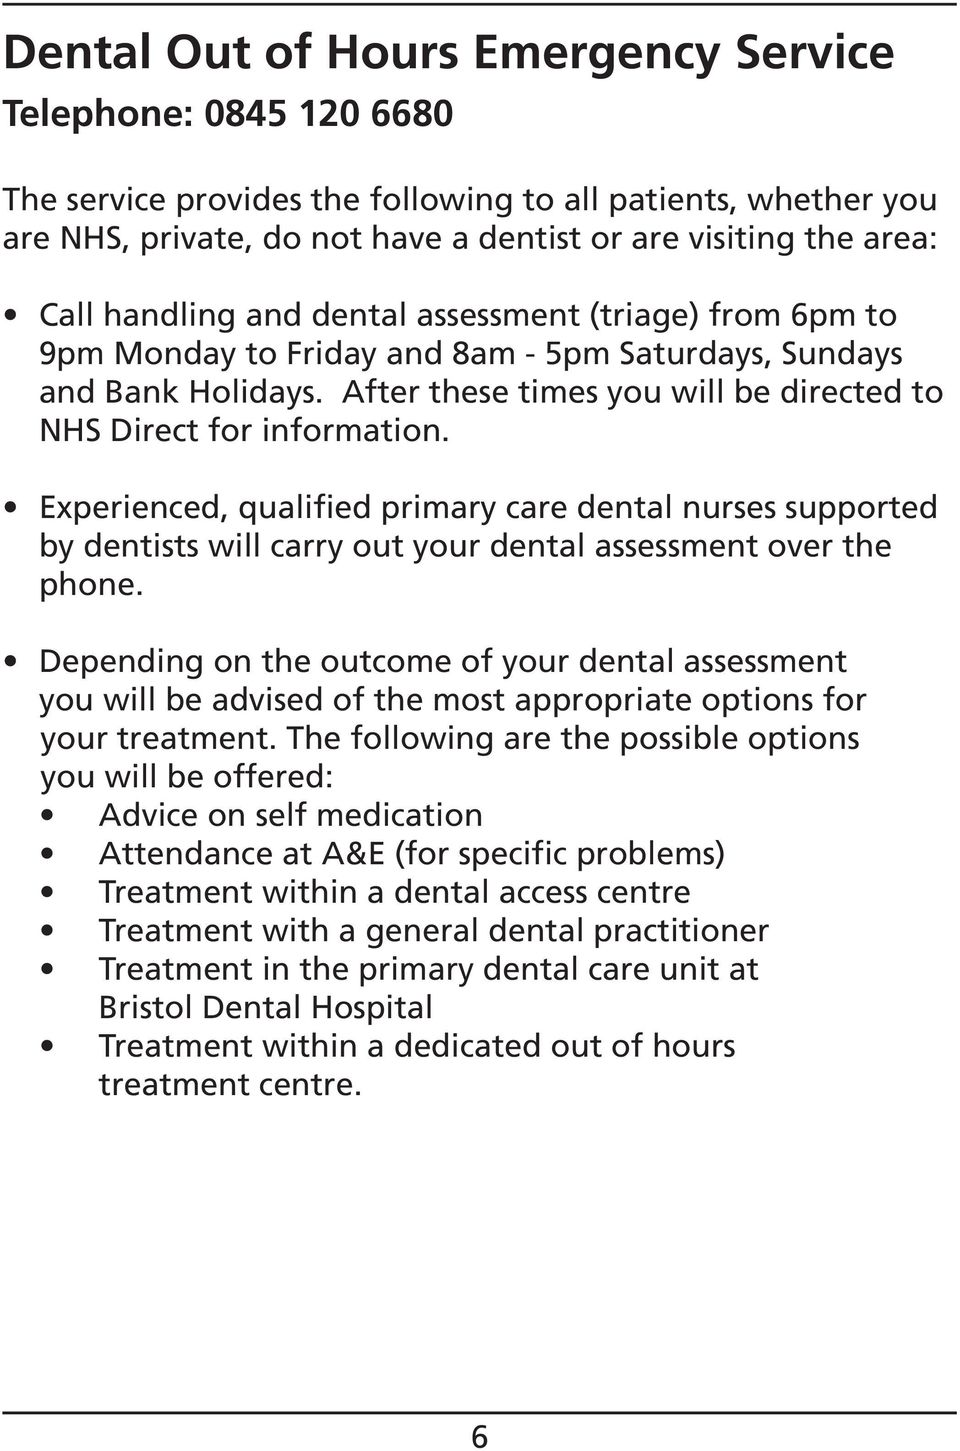 Experienced, qualified primary care dental nurses supported by dentists will carry out your dental assessment over the phone.